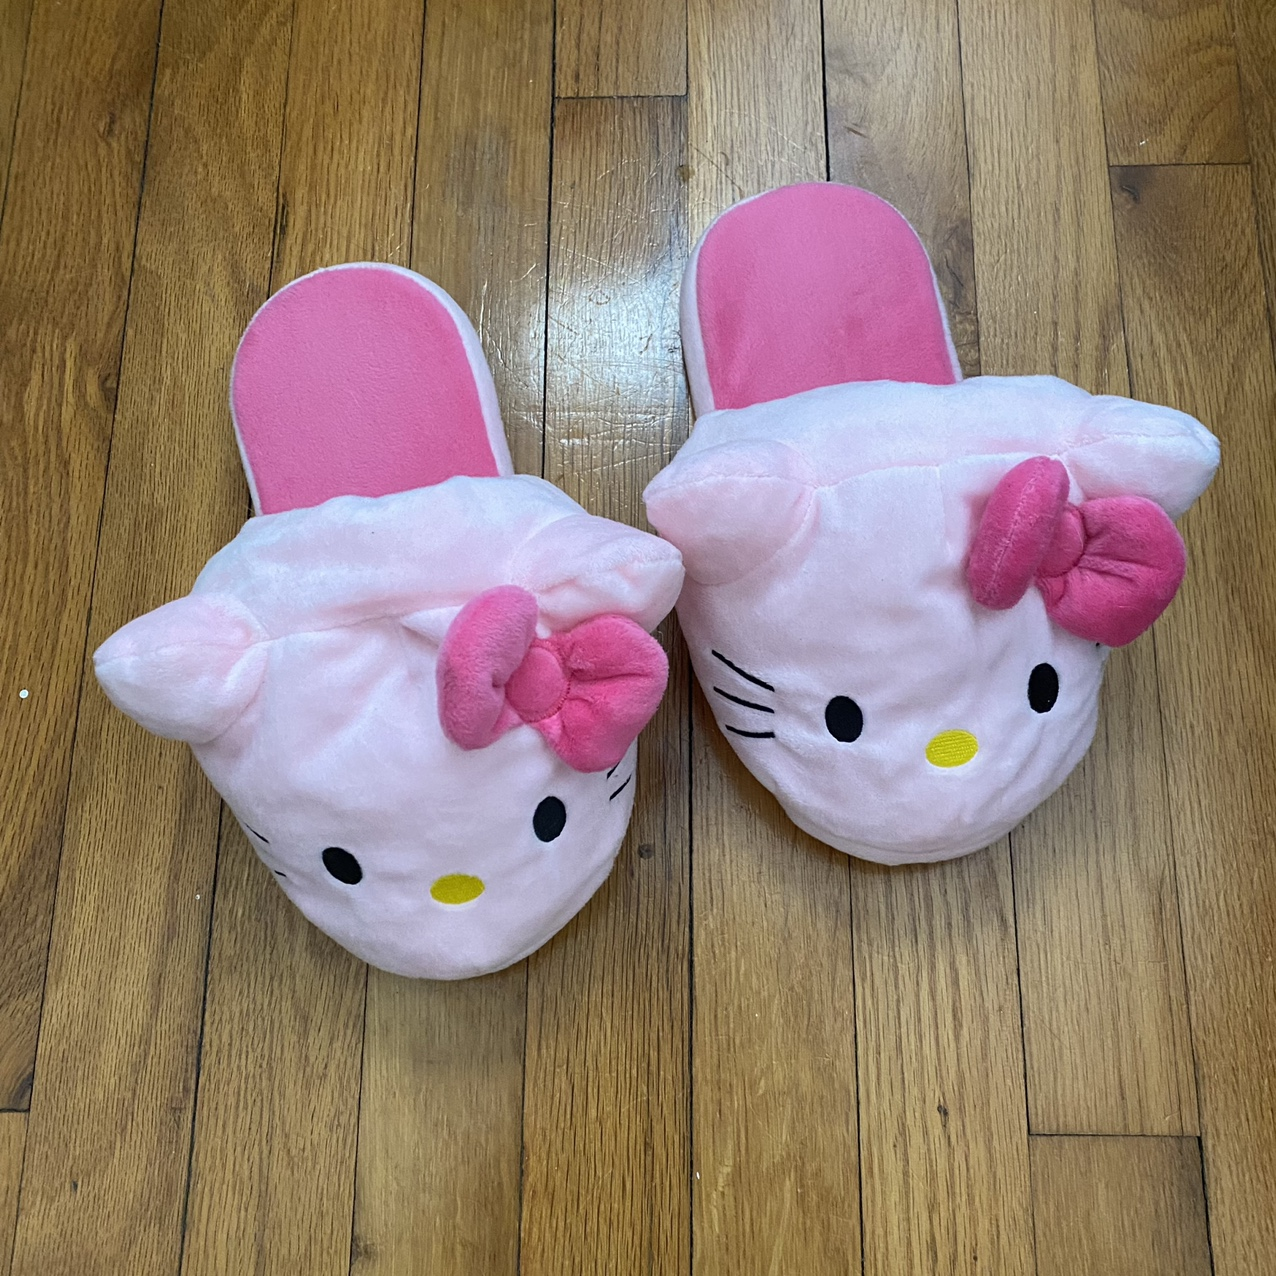 Product Image 1 - Pink Hello Kitty slippers Got these